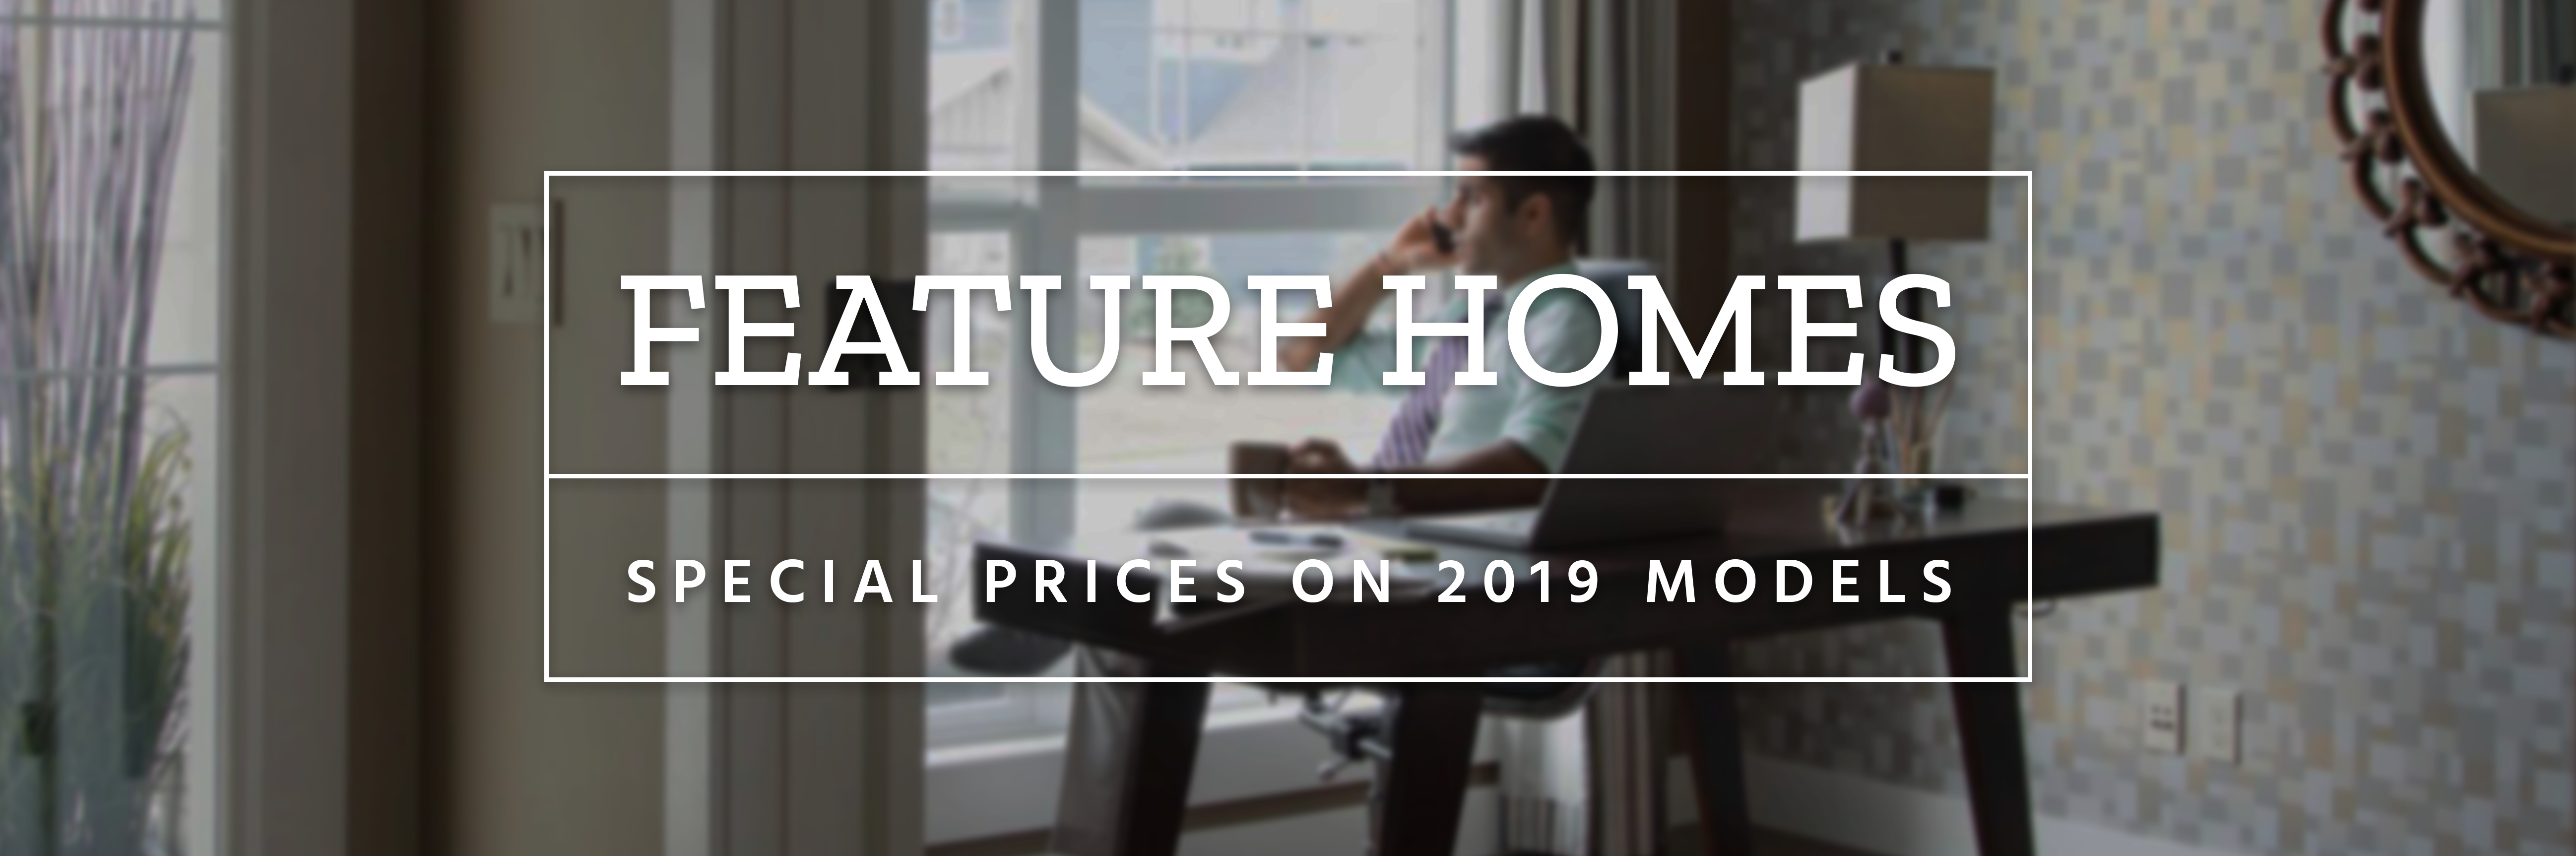 Feature Homes Banner